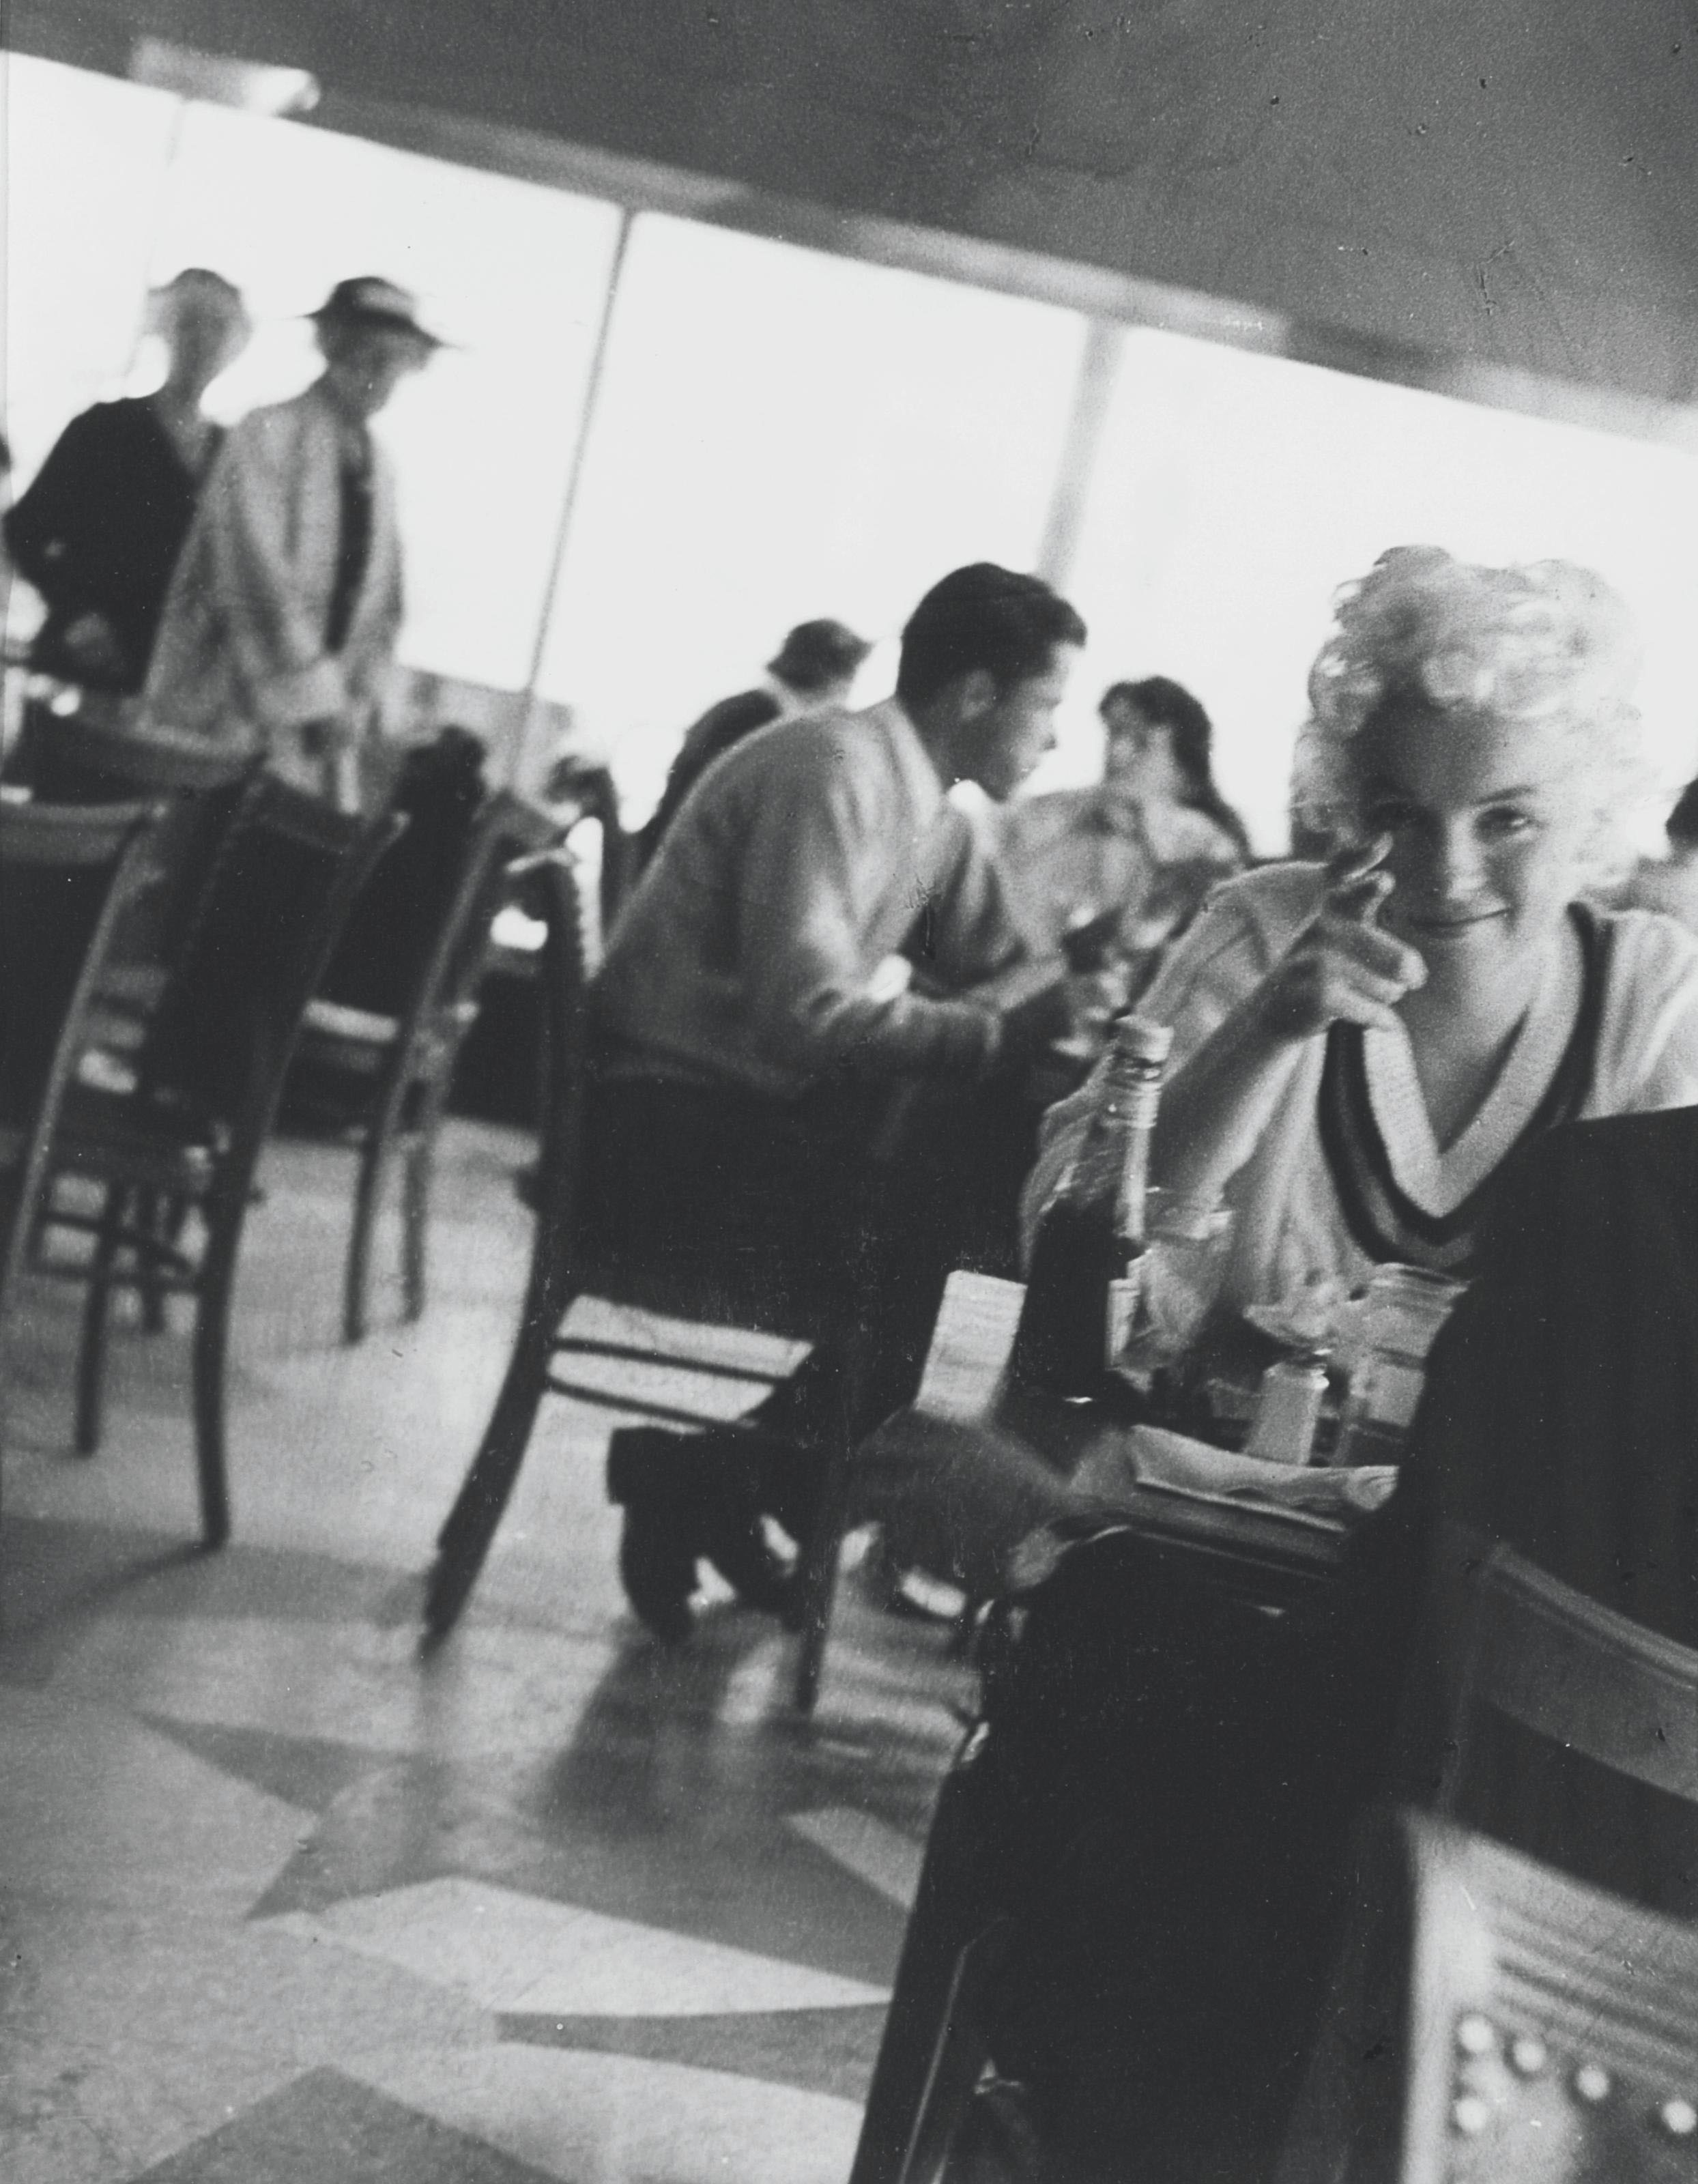 Marilyn Monroe catches Roy stealing a shot, 1955